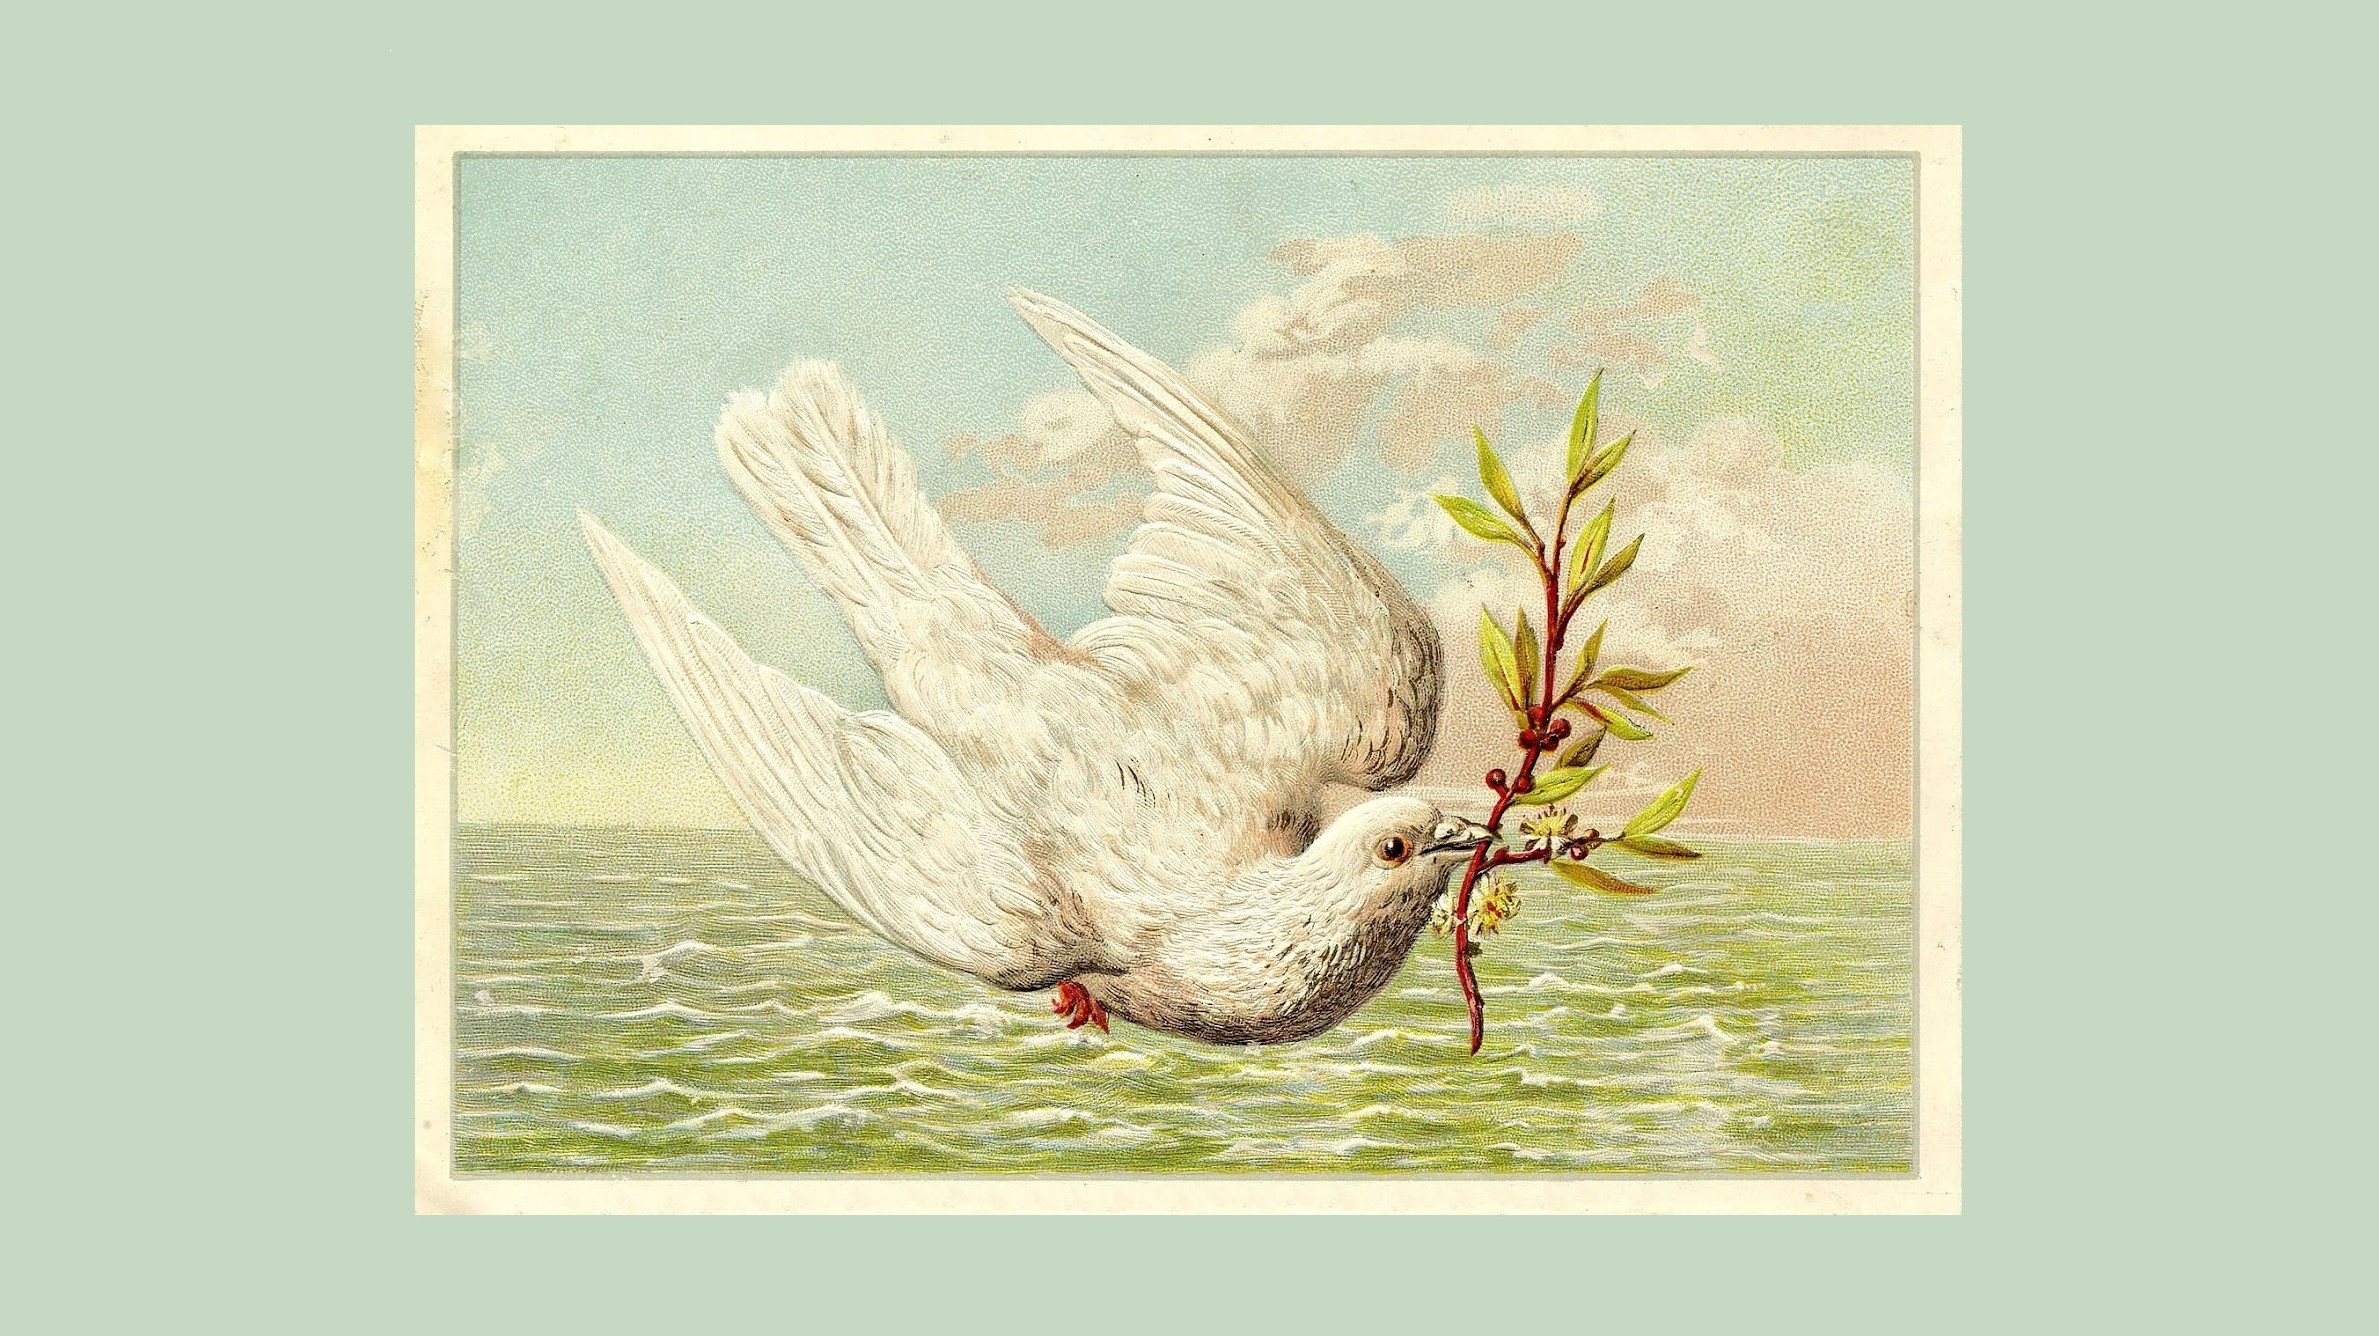 Noah's Boat, Part 4: God's Doves